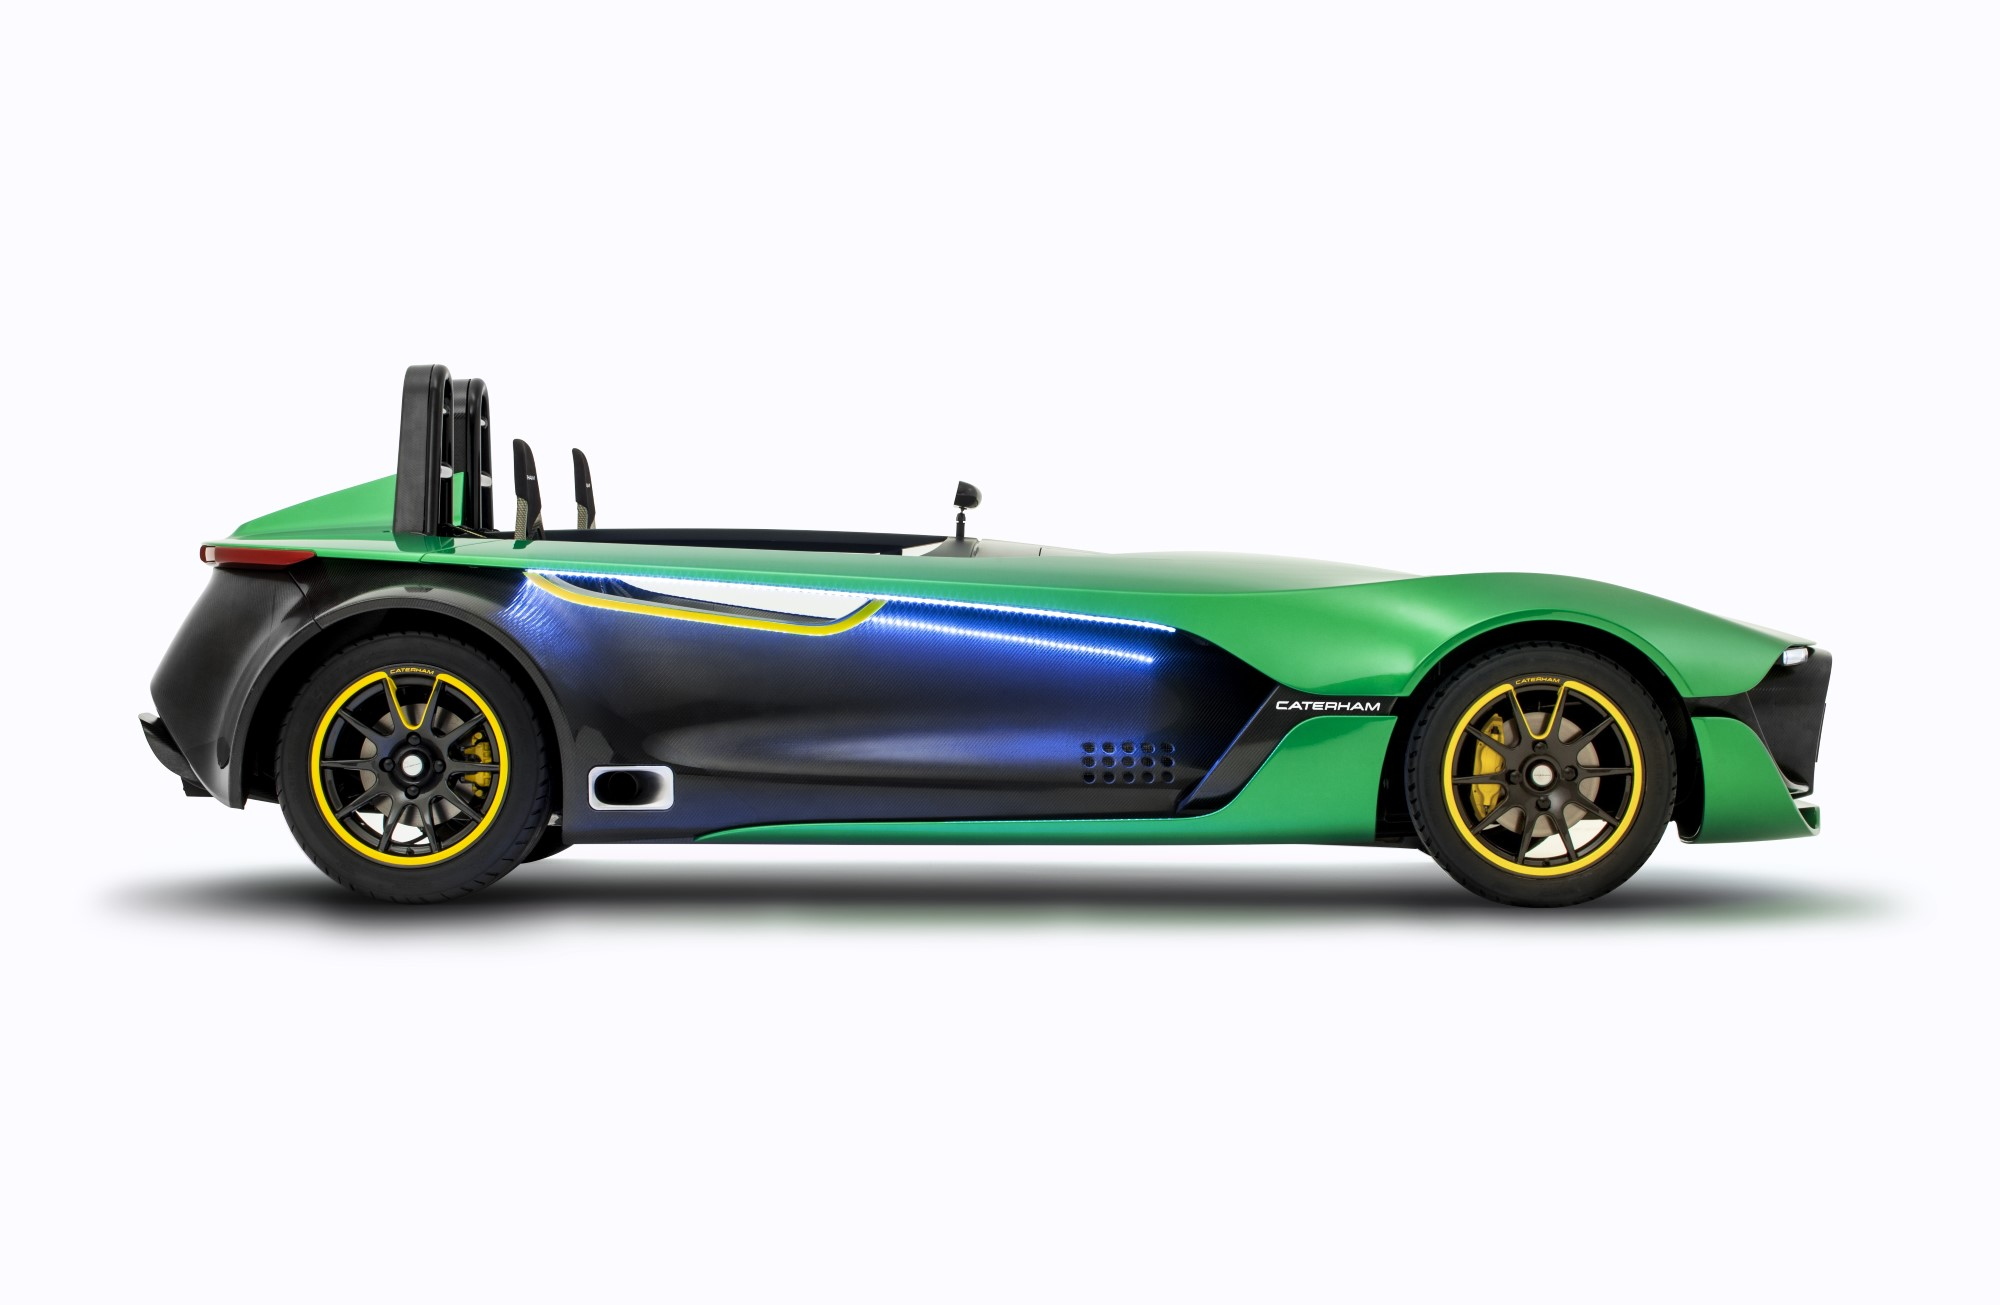 Koenigsegg Agera R Vs Hennessey Venom Gt Drag Race Awesome Cop Says Hes Written